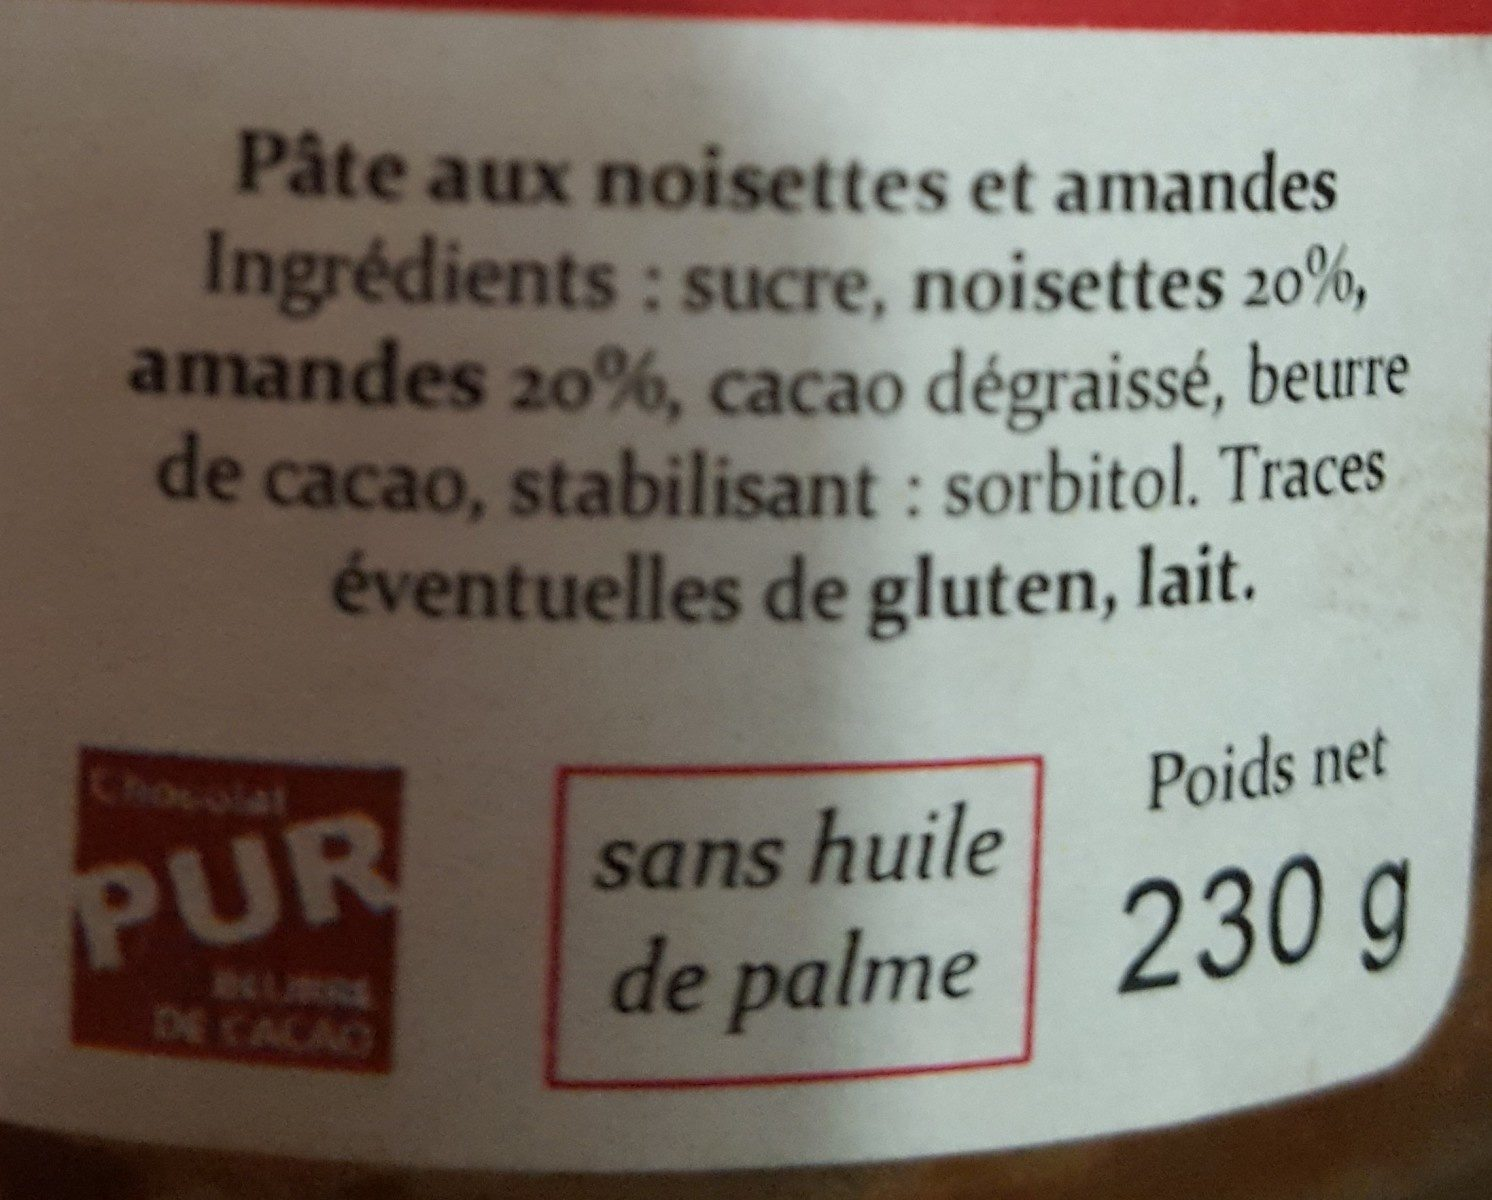 Pâte à tartiner amandes noisettes - Ingredients